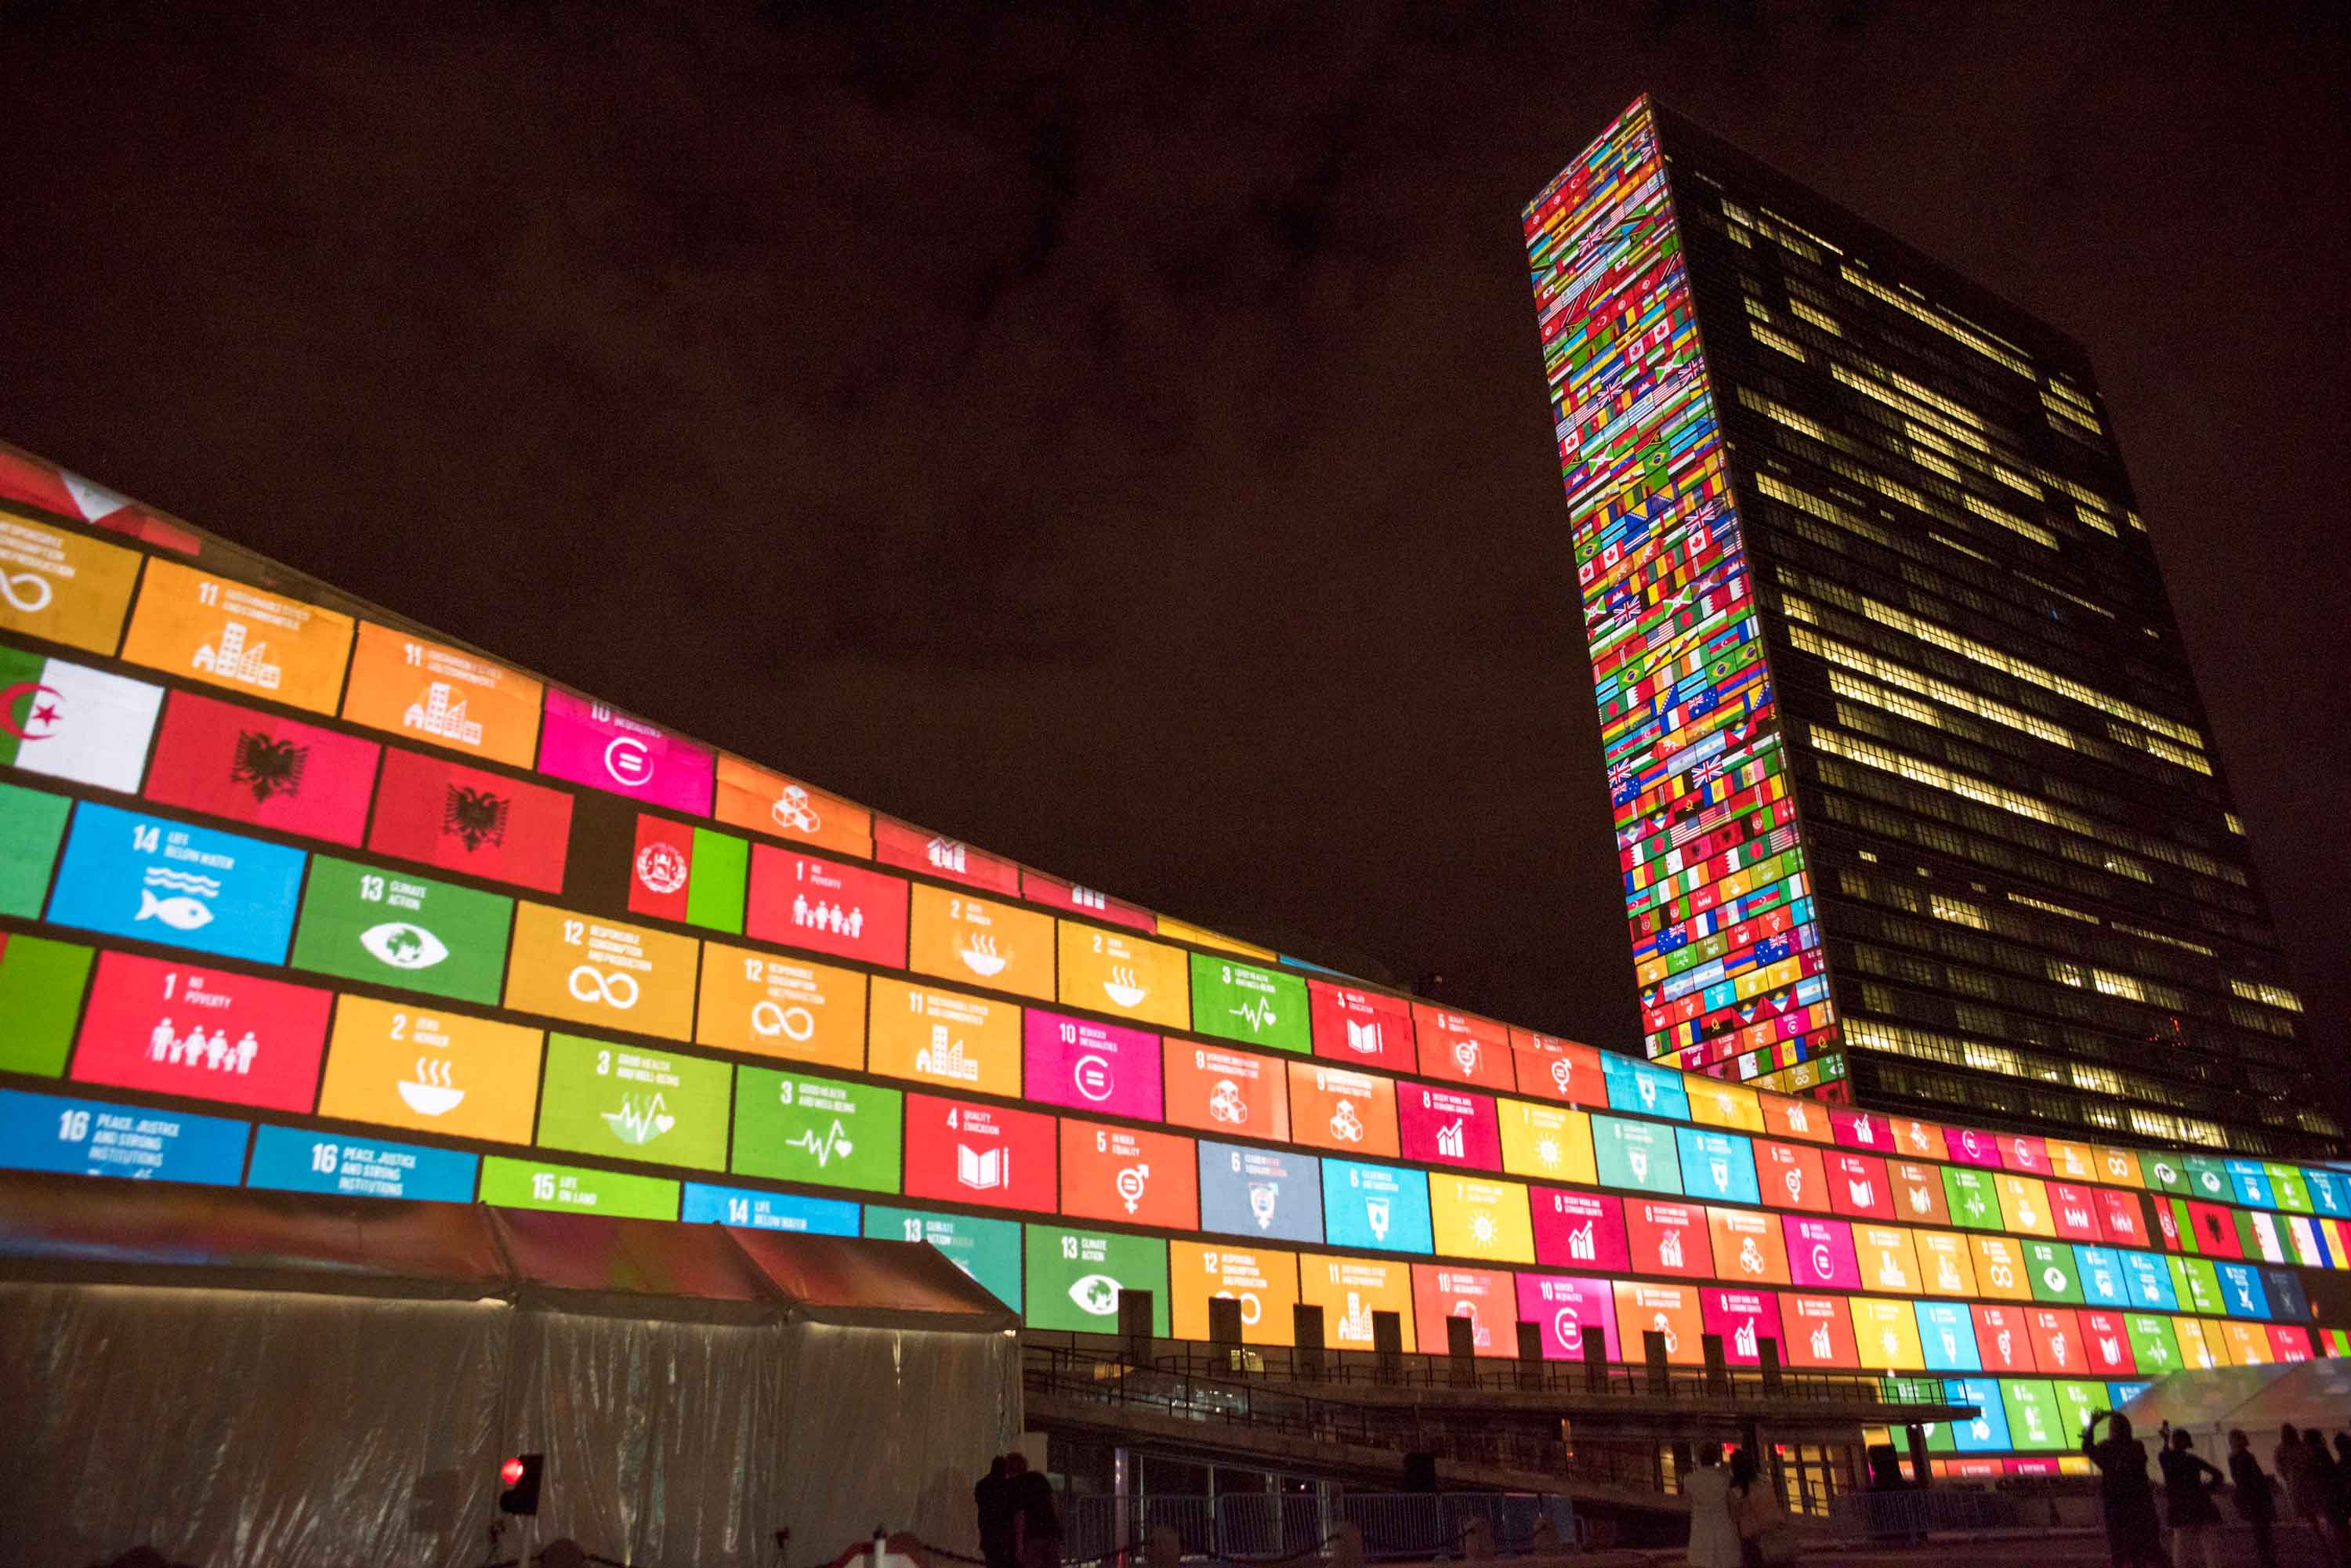 A lightshow to launch the UN's Sustainable Development Goals is seen on the facades of the General Assembly and Secretariat buildings in New York City on September 22nd, 2015.